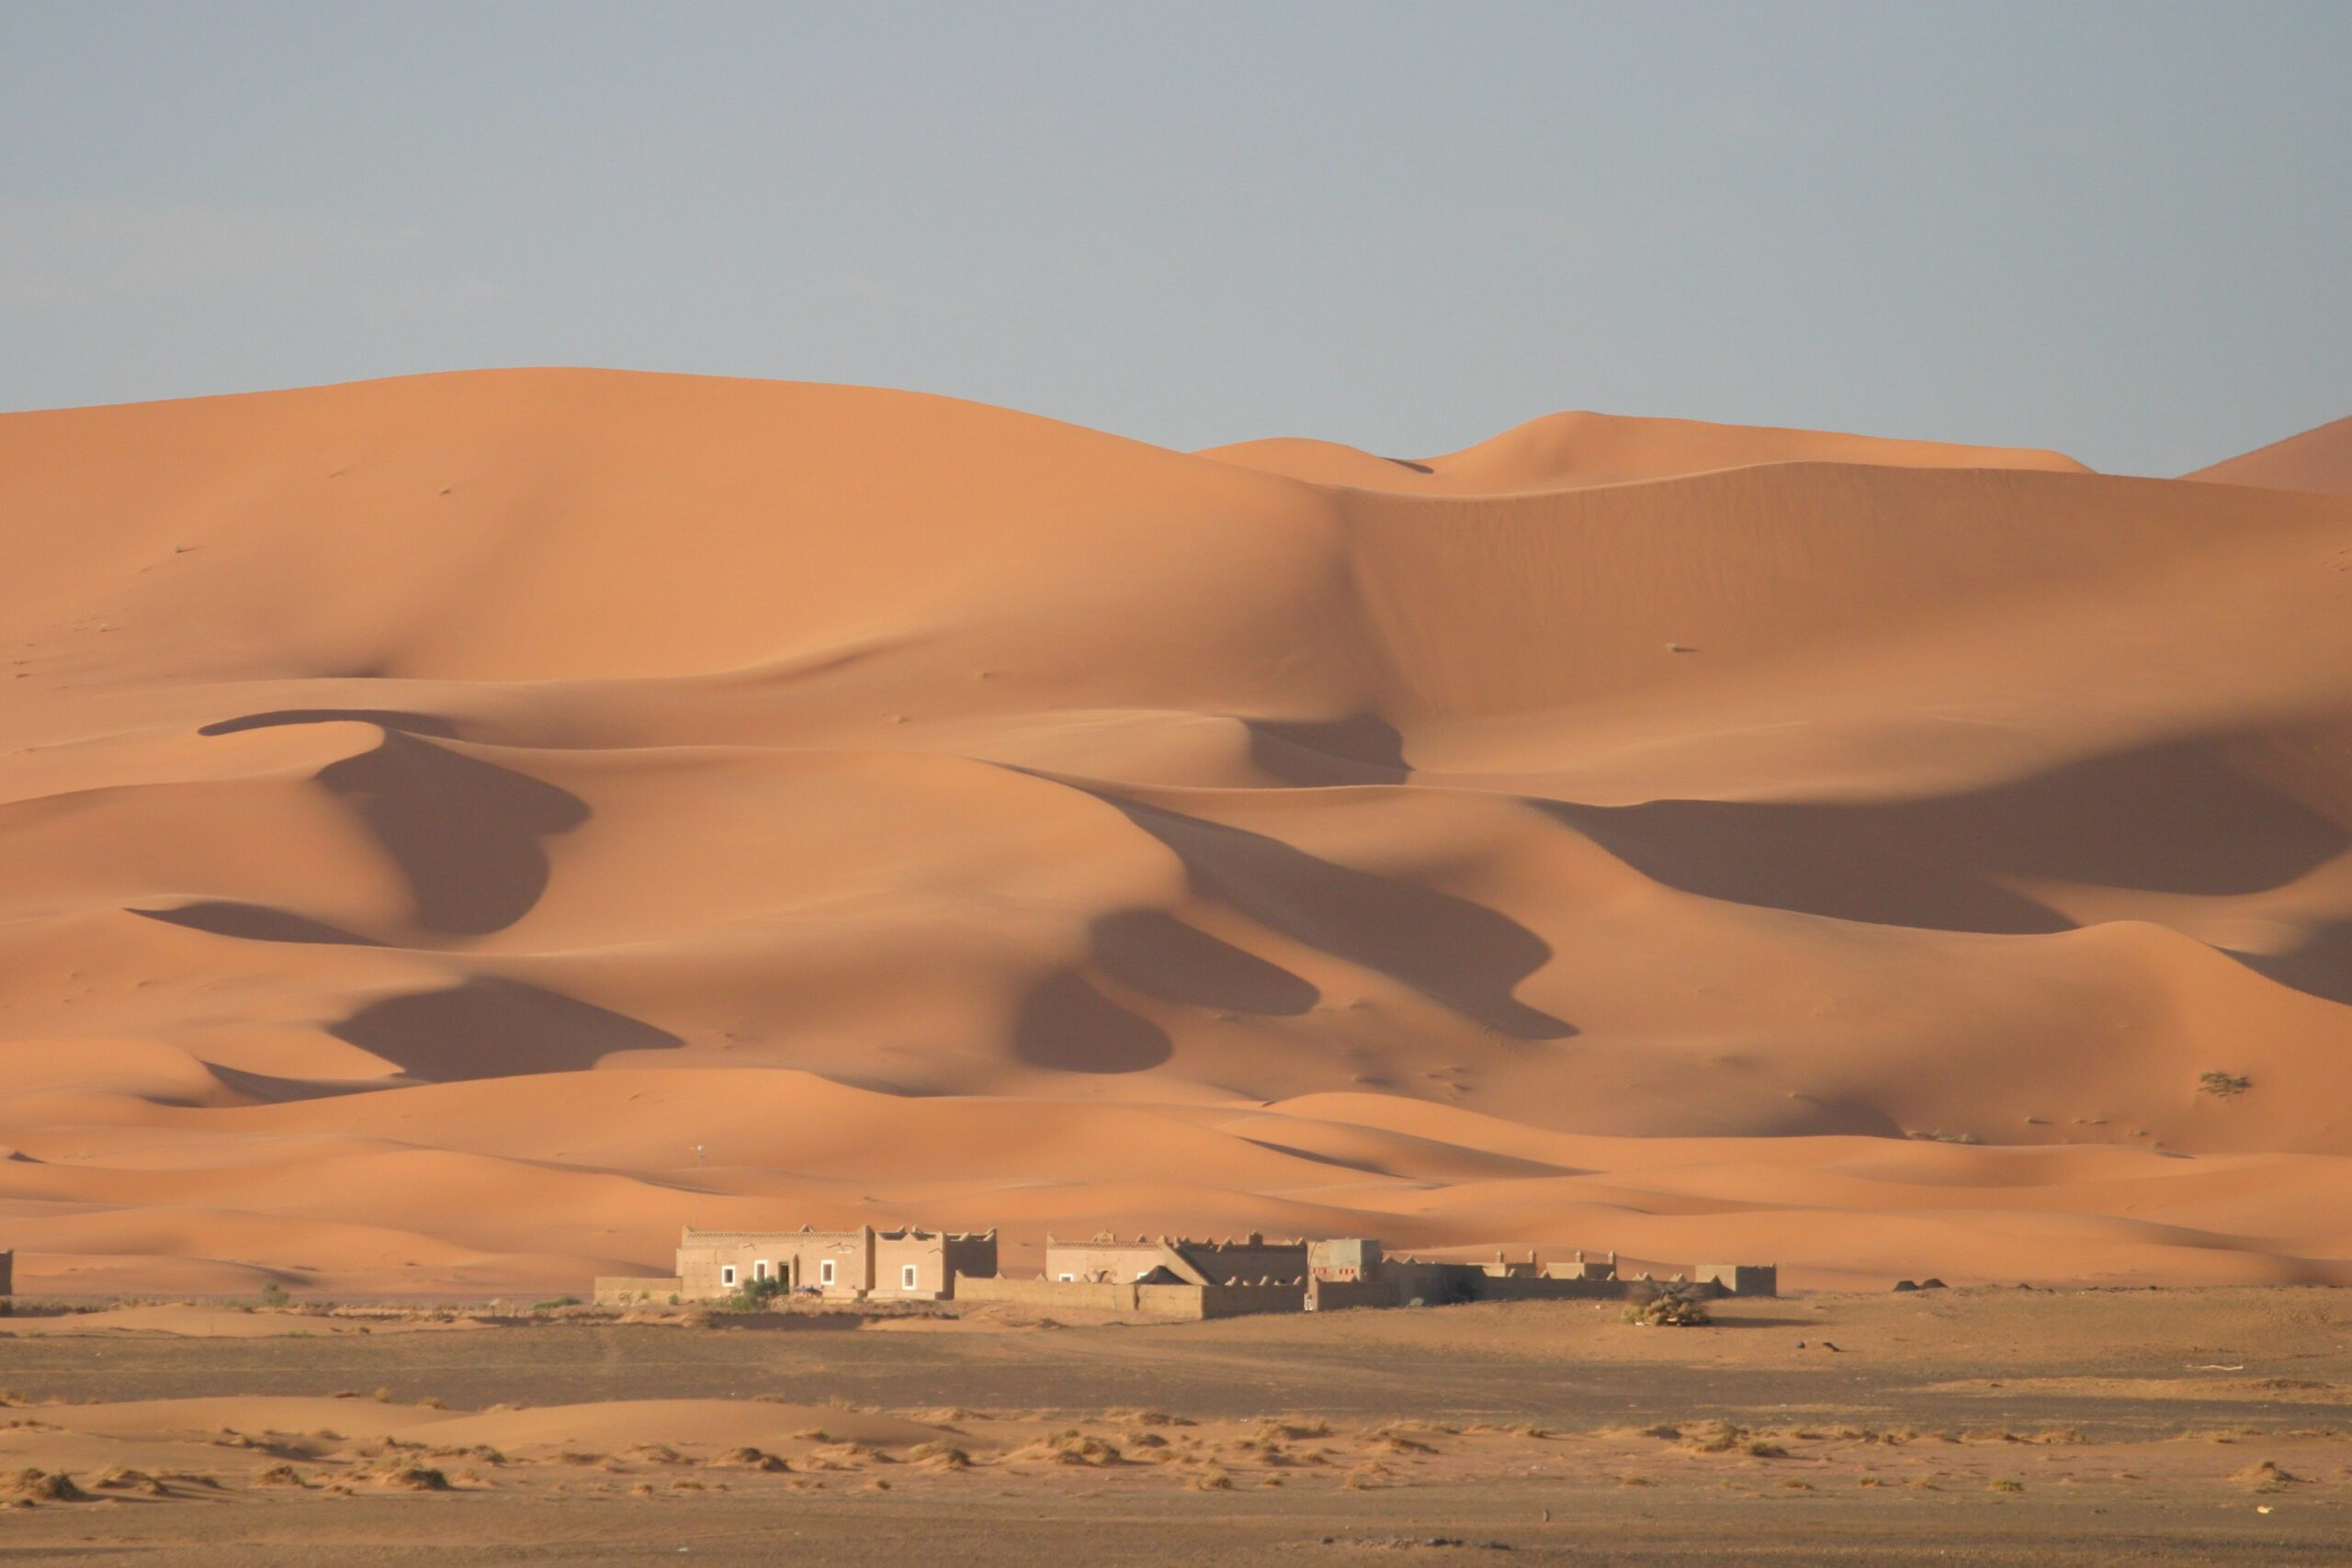 desert camp with sandy dunes behind